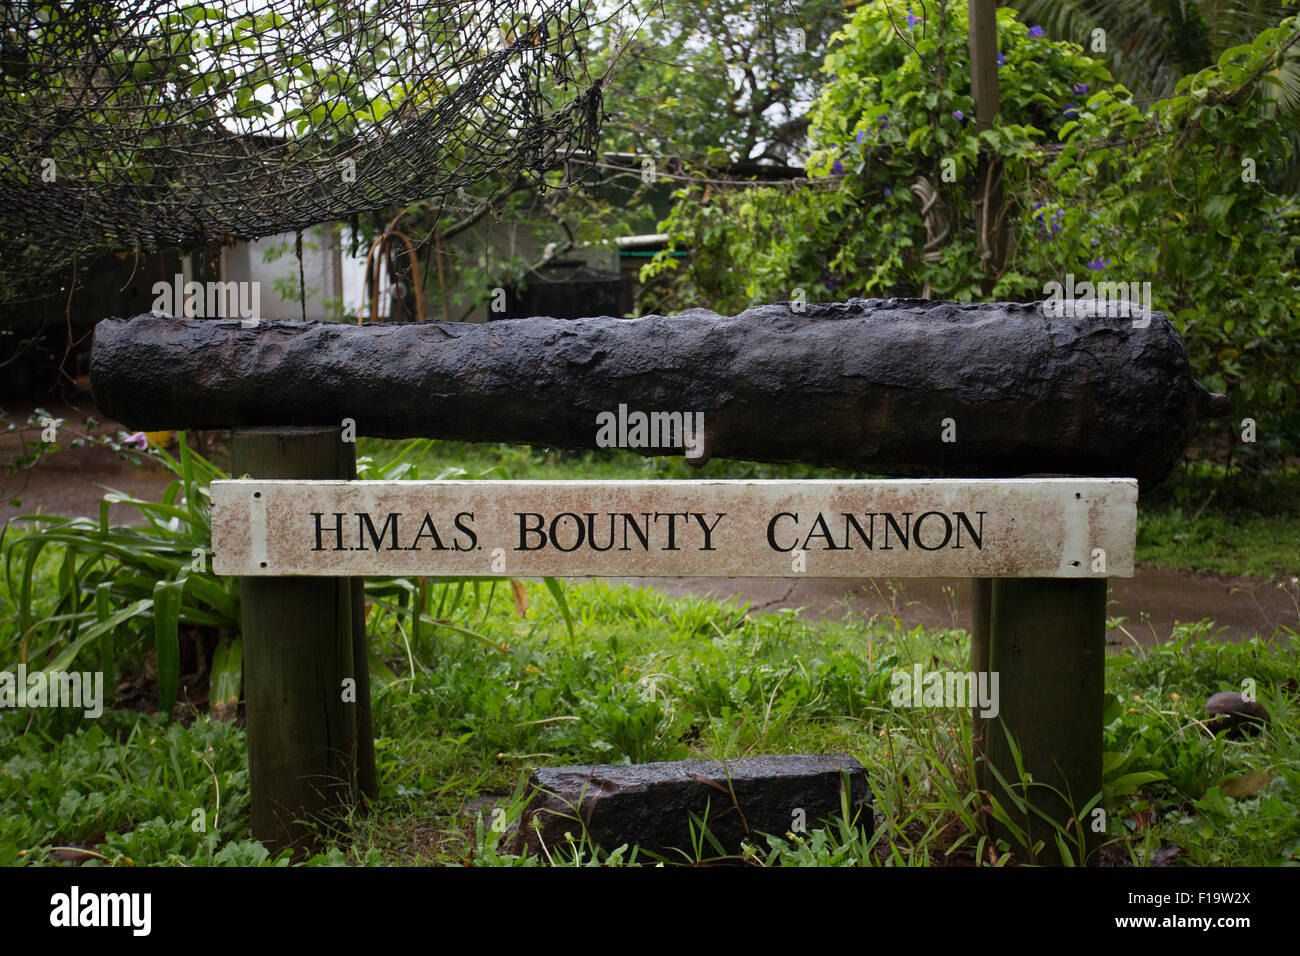 Adamstown Pitcairn Island High Resolution Stock Photography And Images Alamy